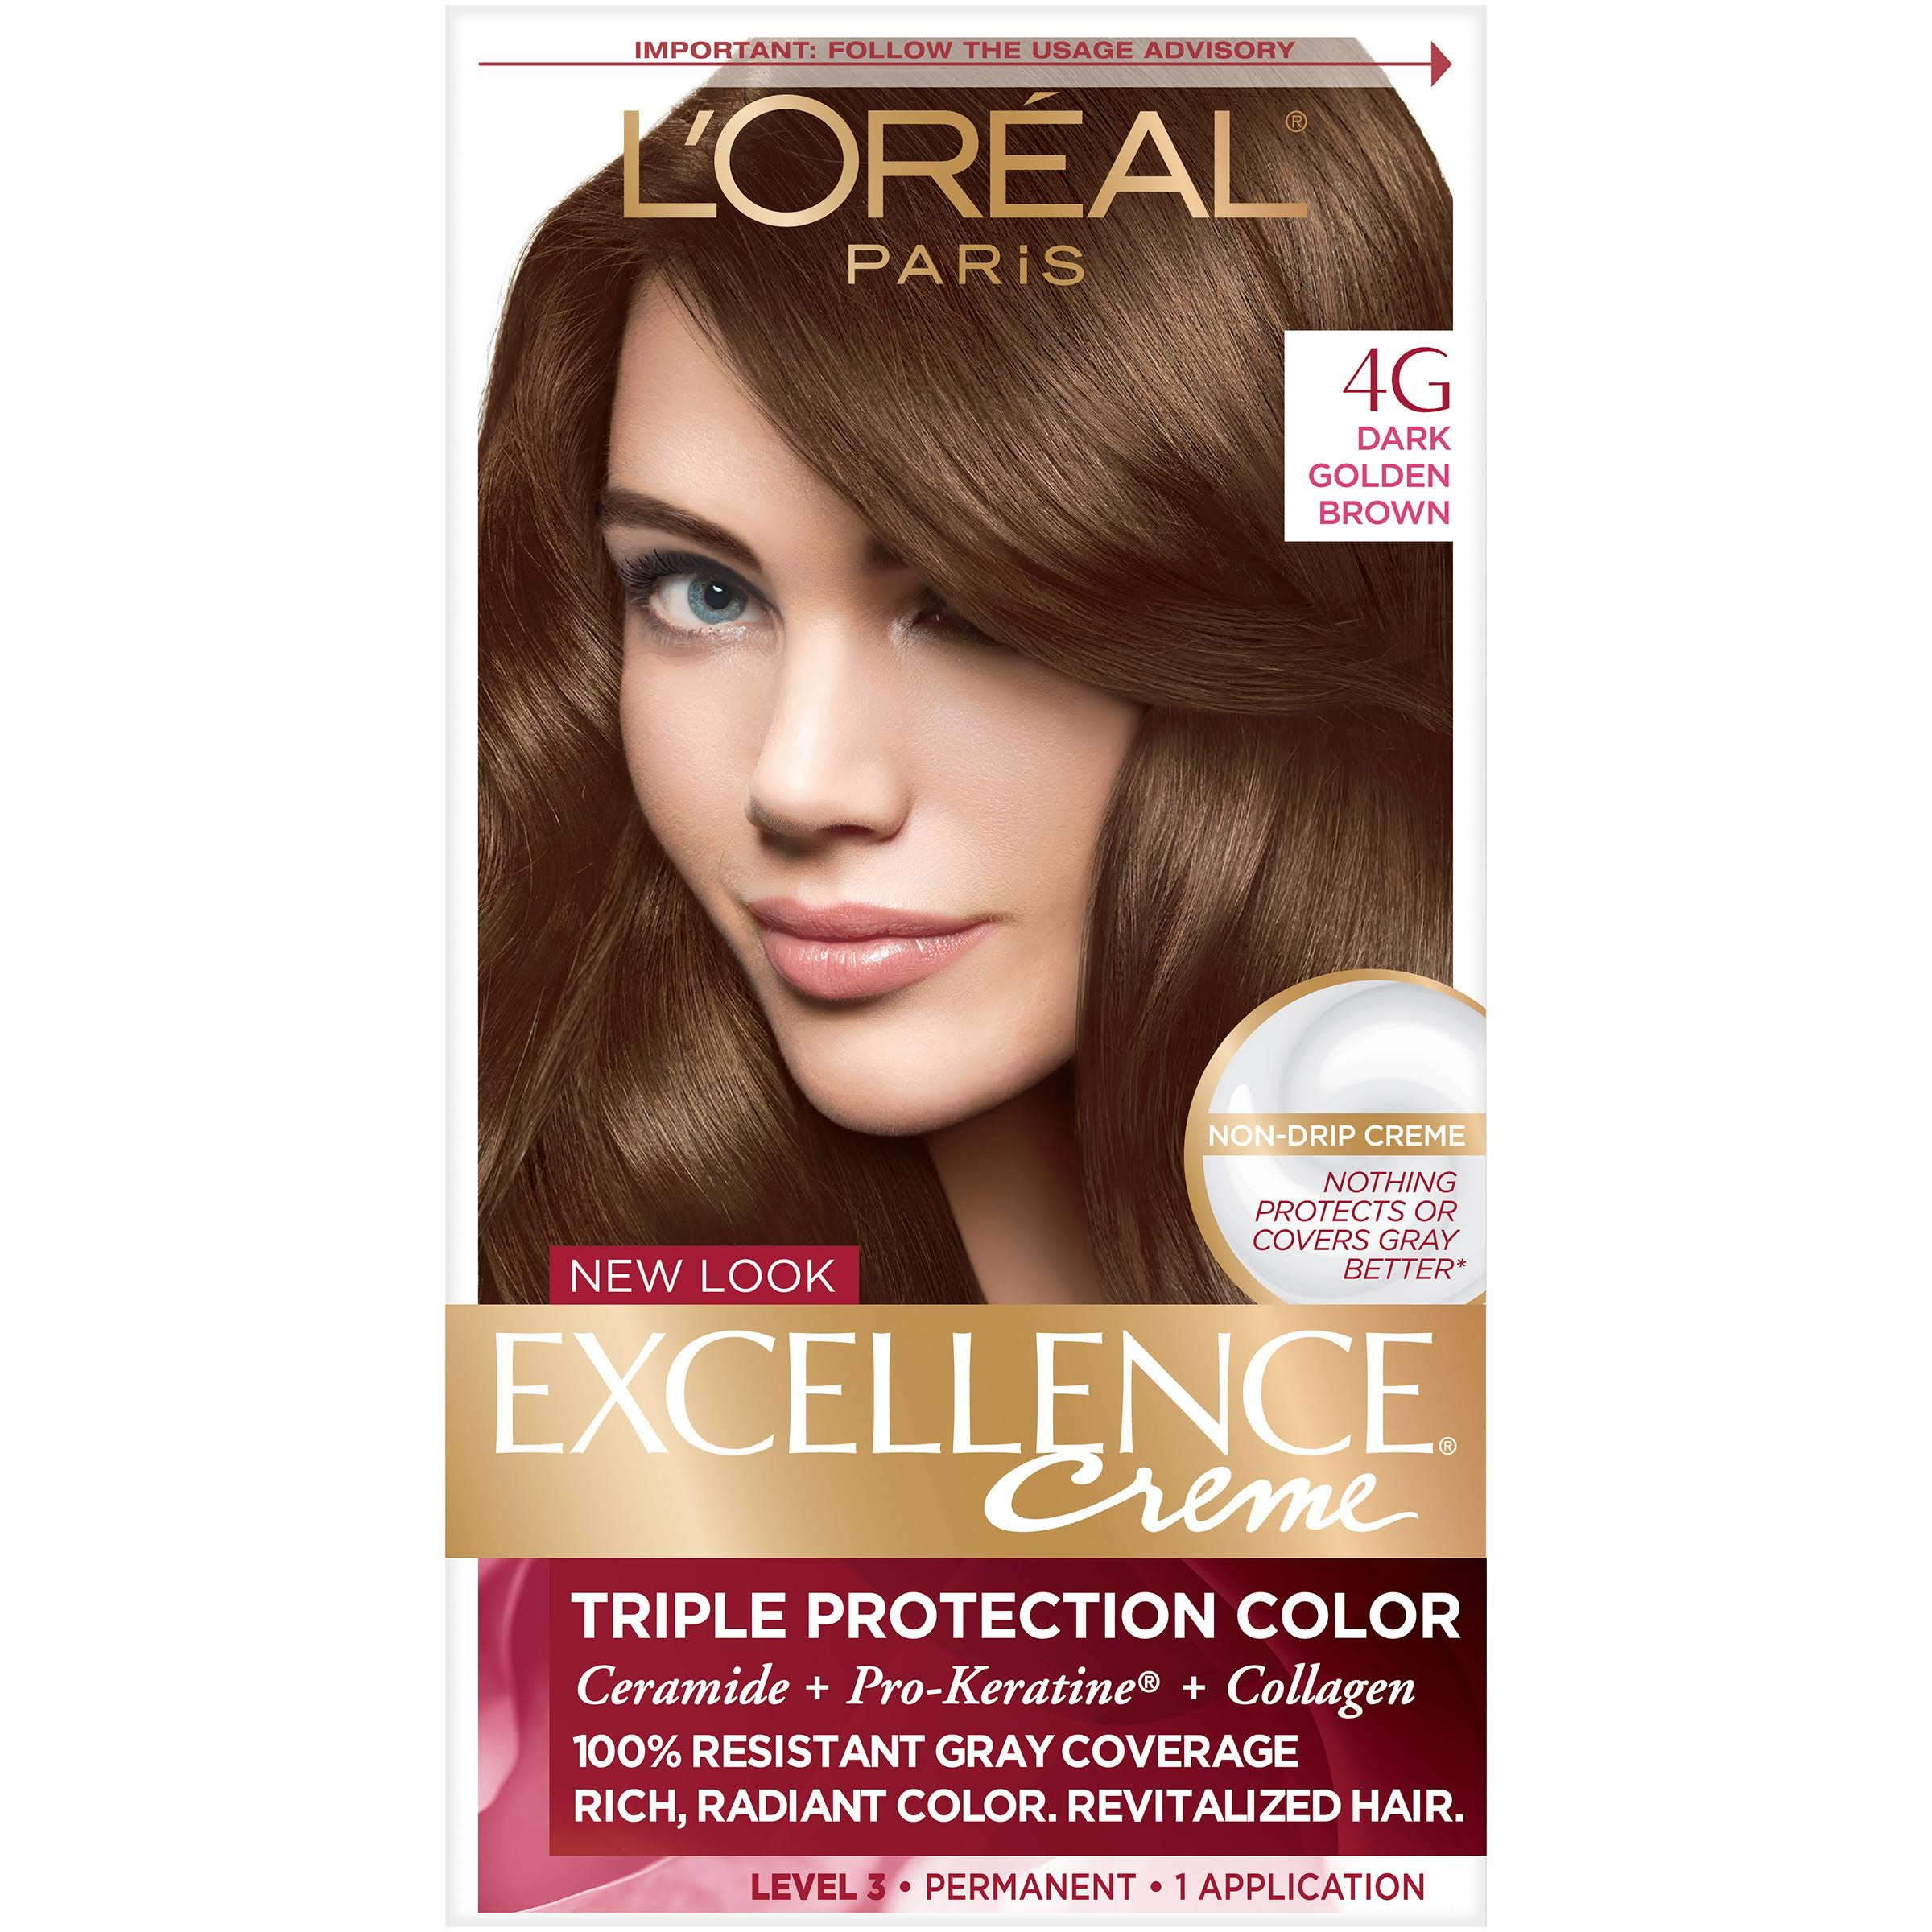 L'Oréal Paris Excellence Creme Hair Color - 4G Dark Golden Brown